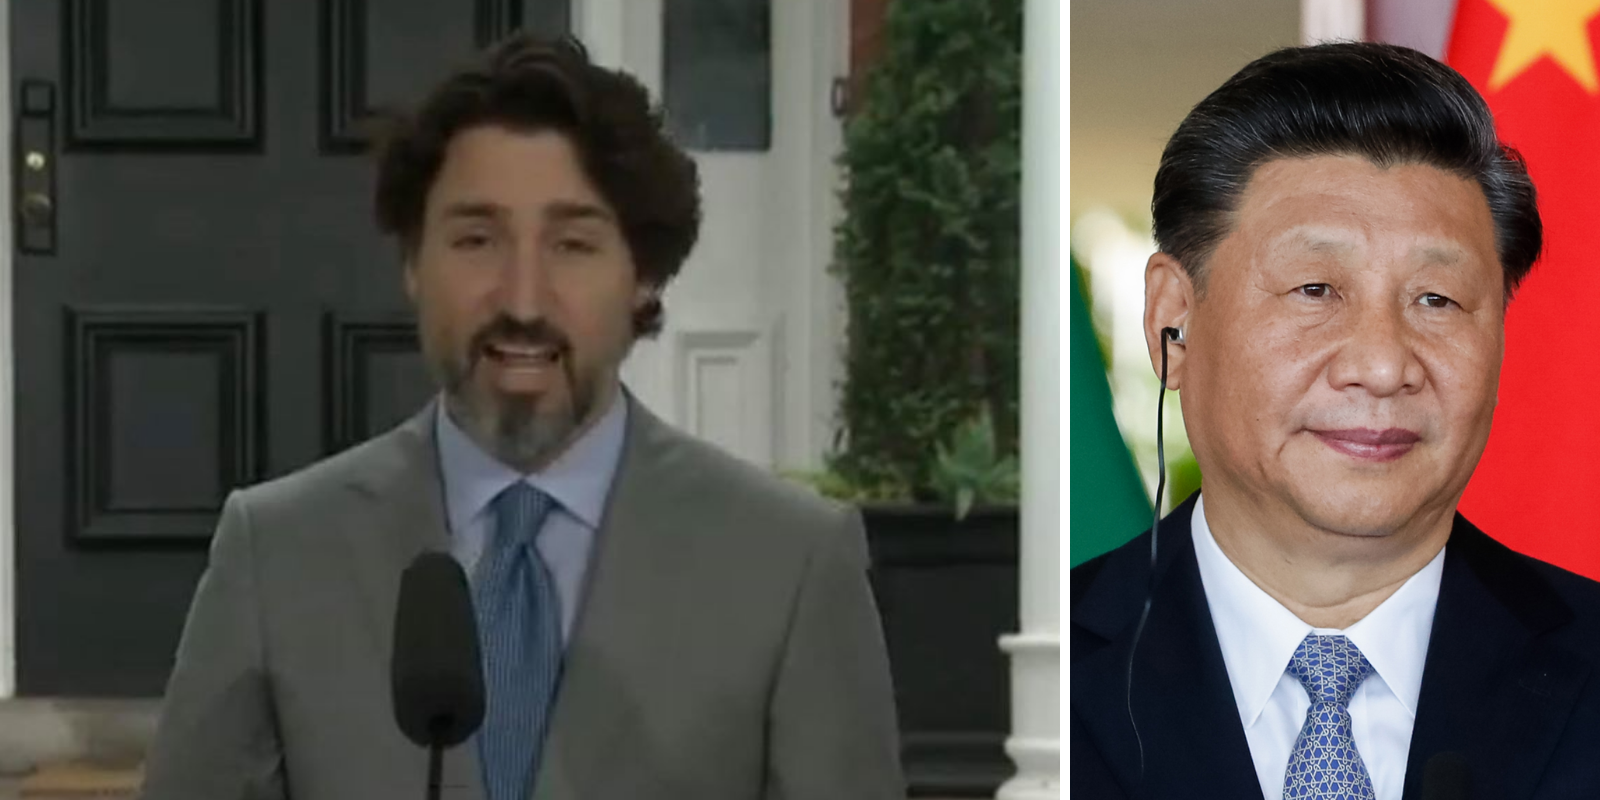 BREAKING: Trudeau can't answer whether or not he's afraid of Xi Jinping